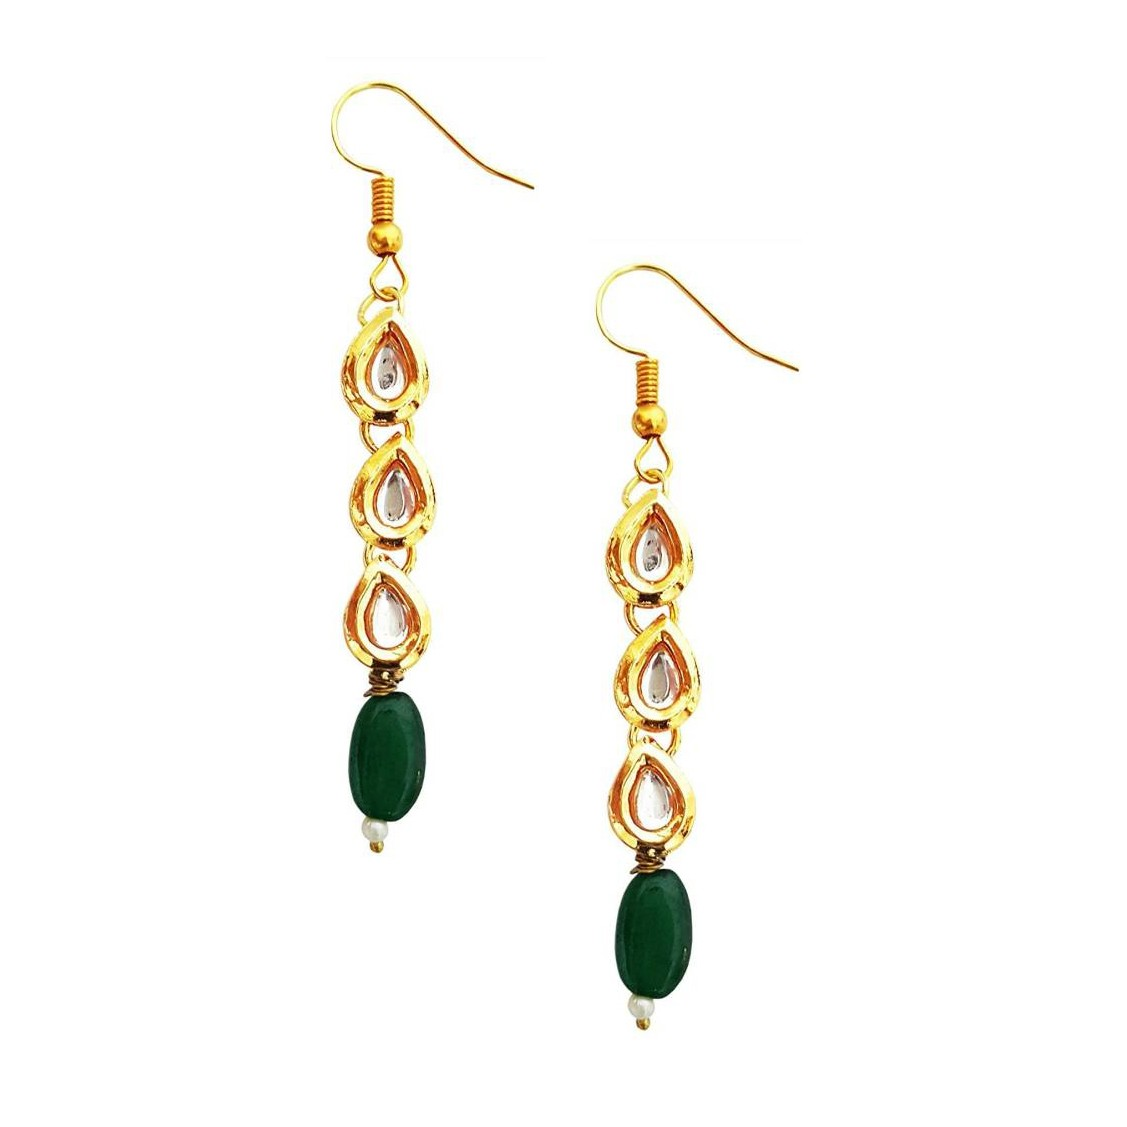 Kundan Round Stone Earrings Green Golden Color For Woman & Girls 01